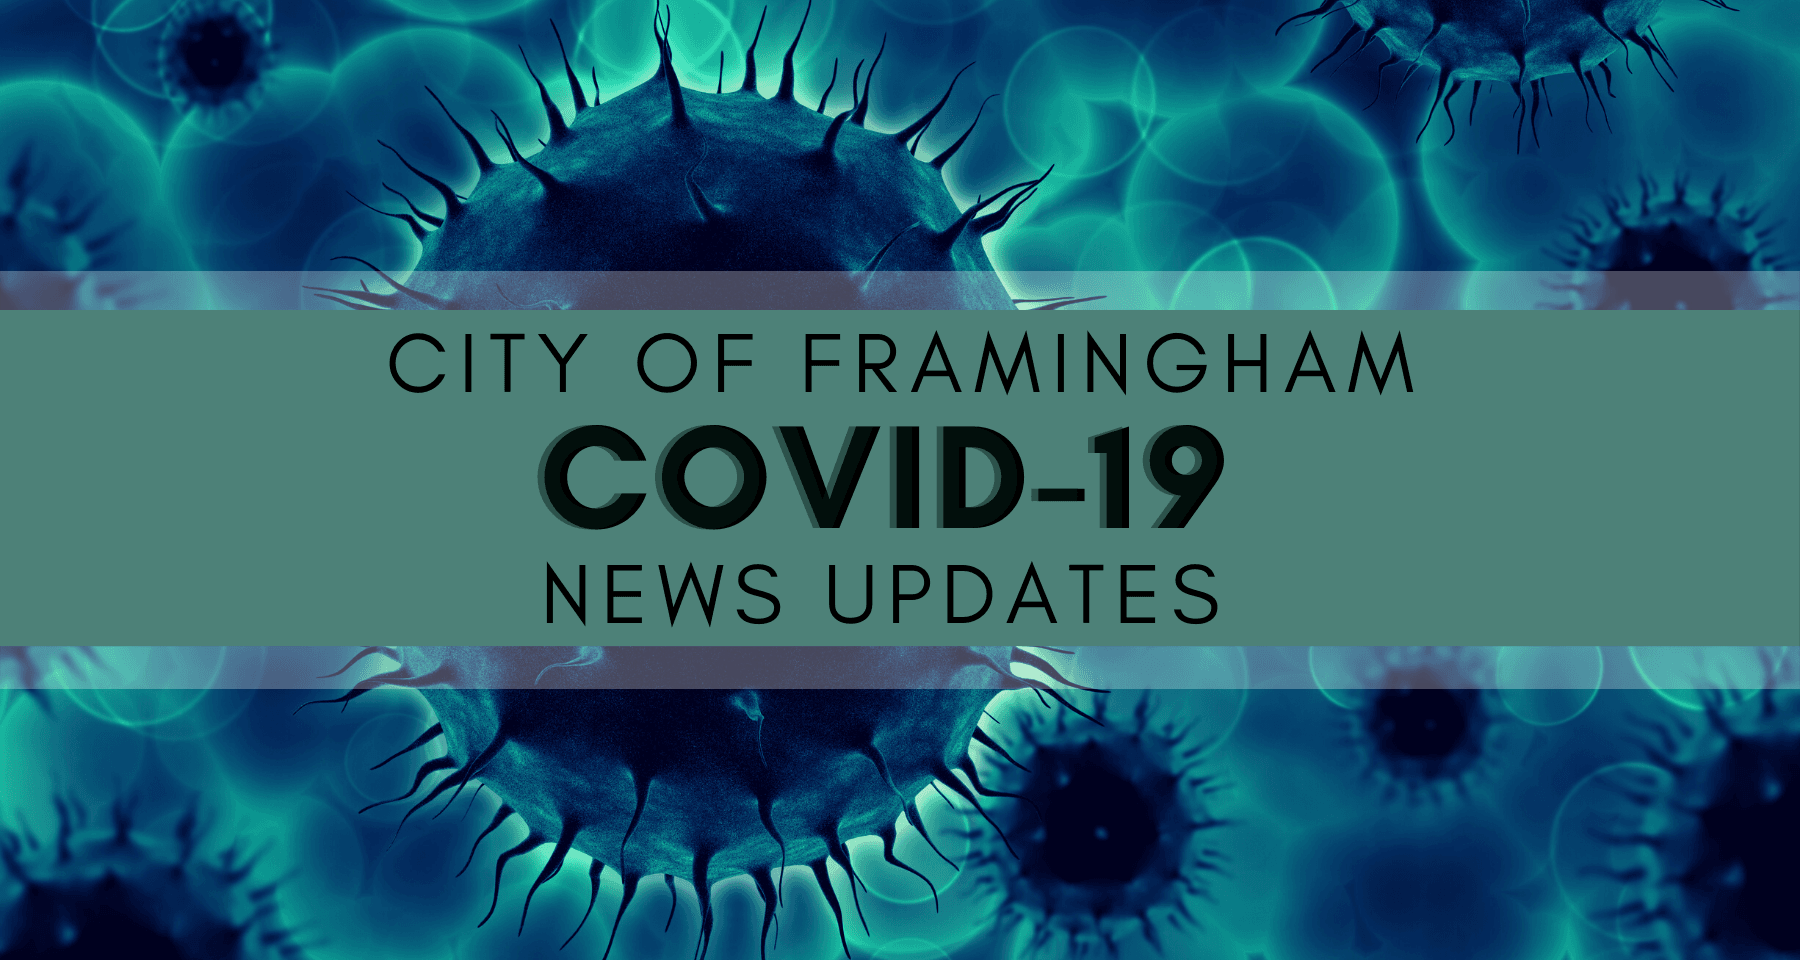 Banner with an image of viruses floating around, Text:: City of Framingham, COVID-19 News Updates